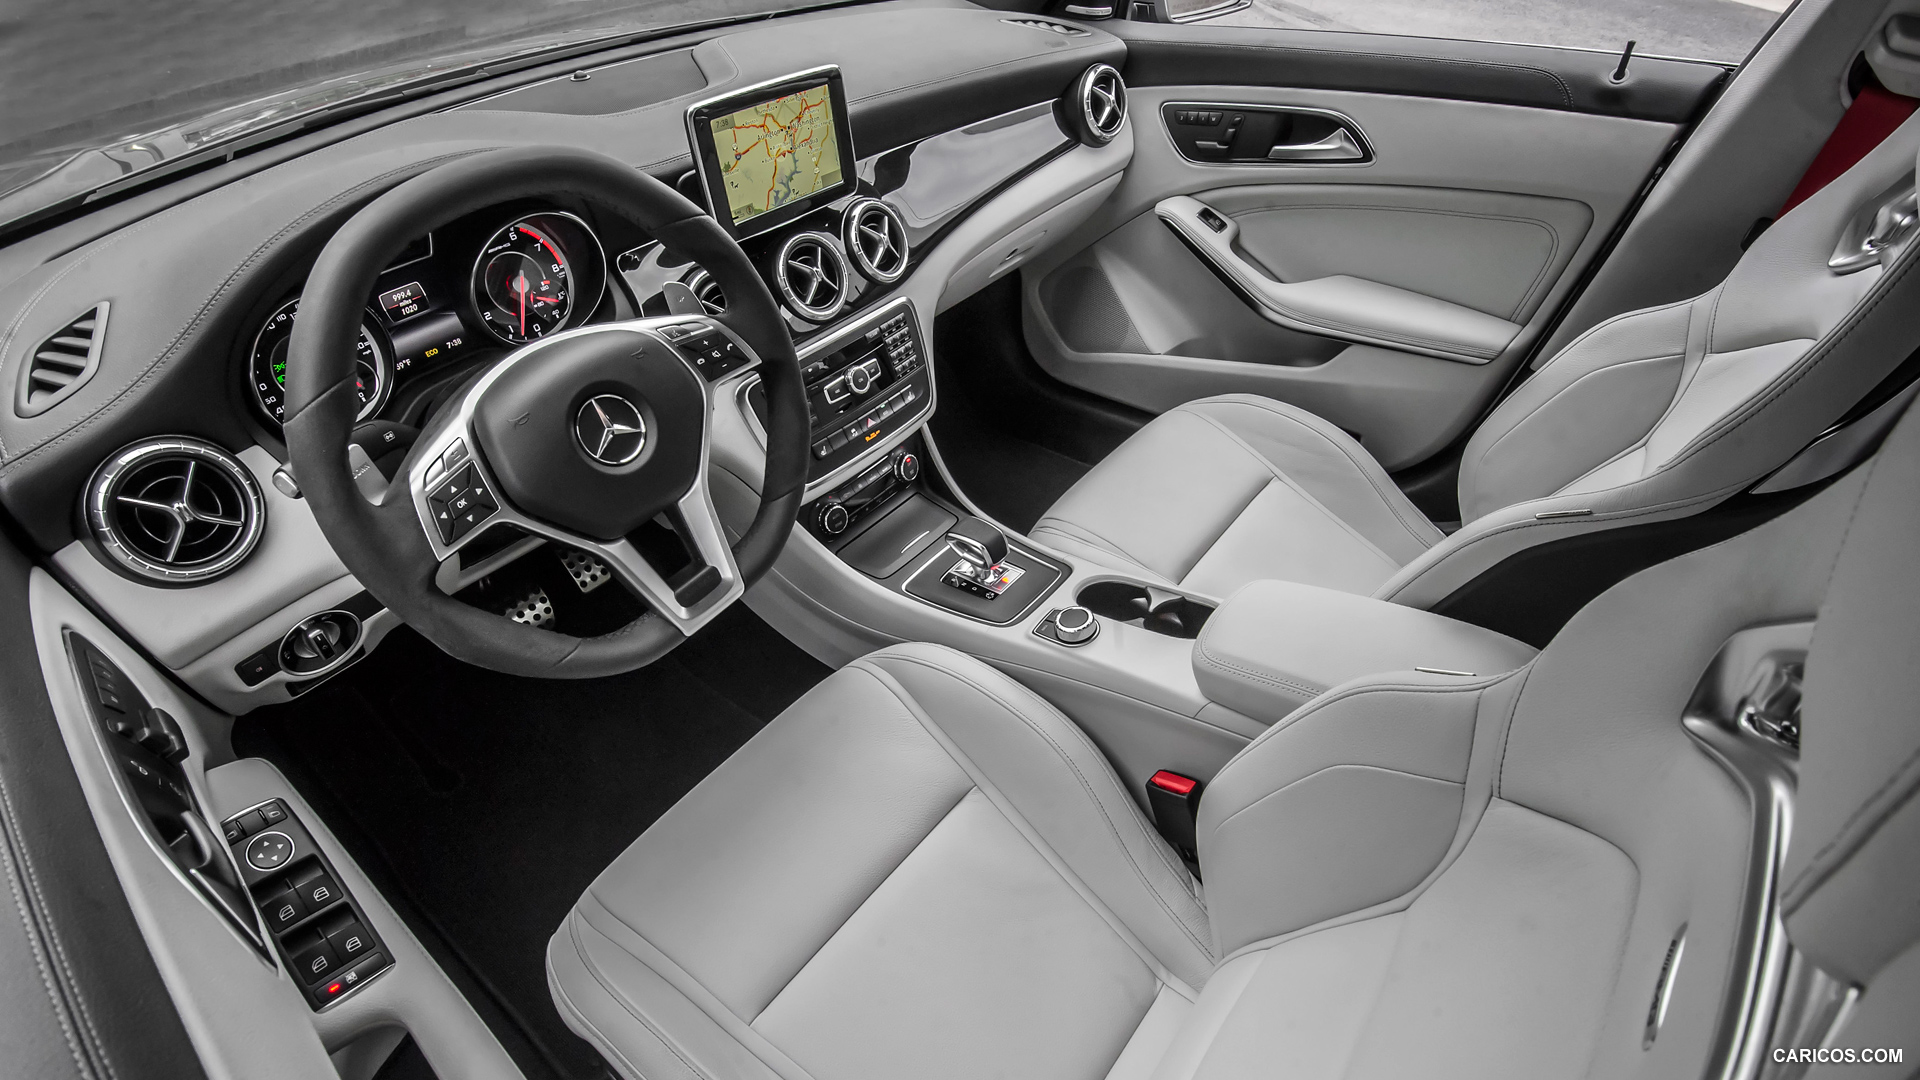 mercedes benz cla class us version photos photo gallery page 3. Black Bedroom Furniture Sets. Home Design Ideas